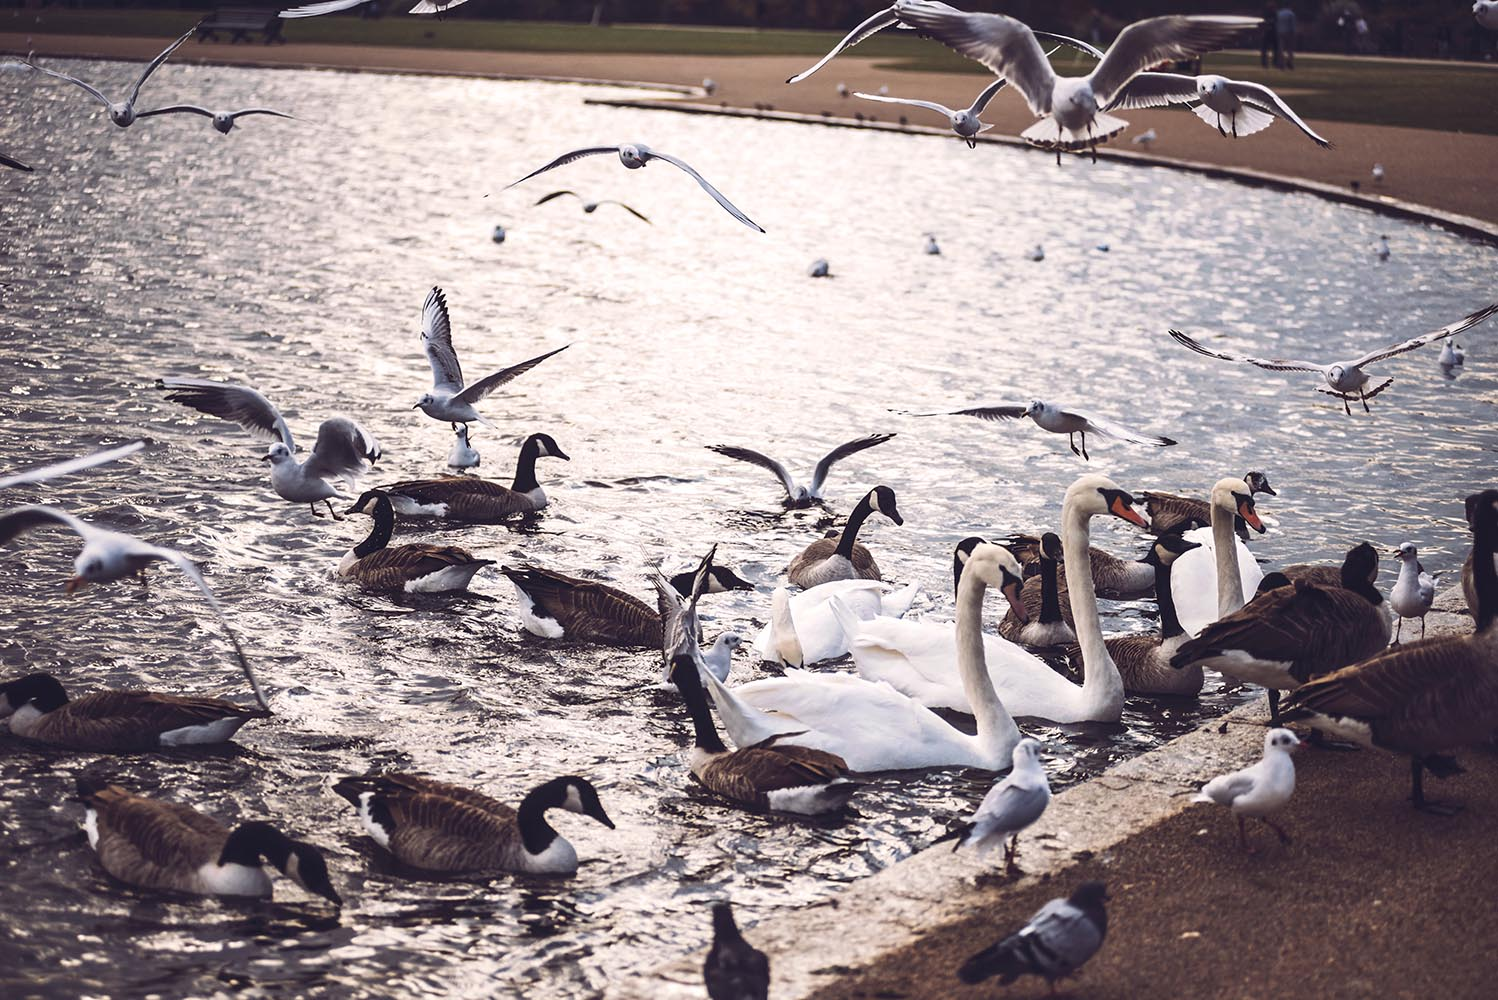 A lot of birds in park